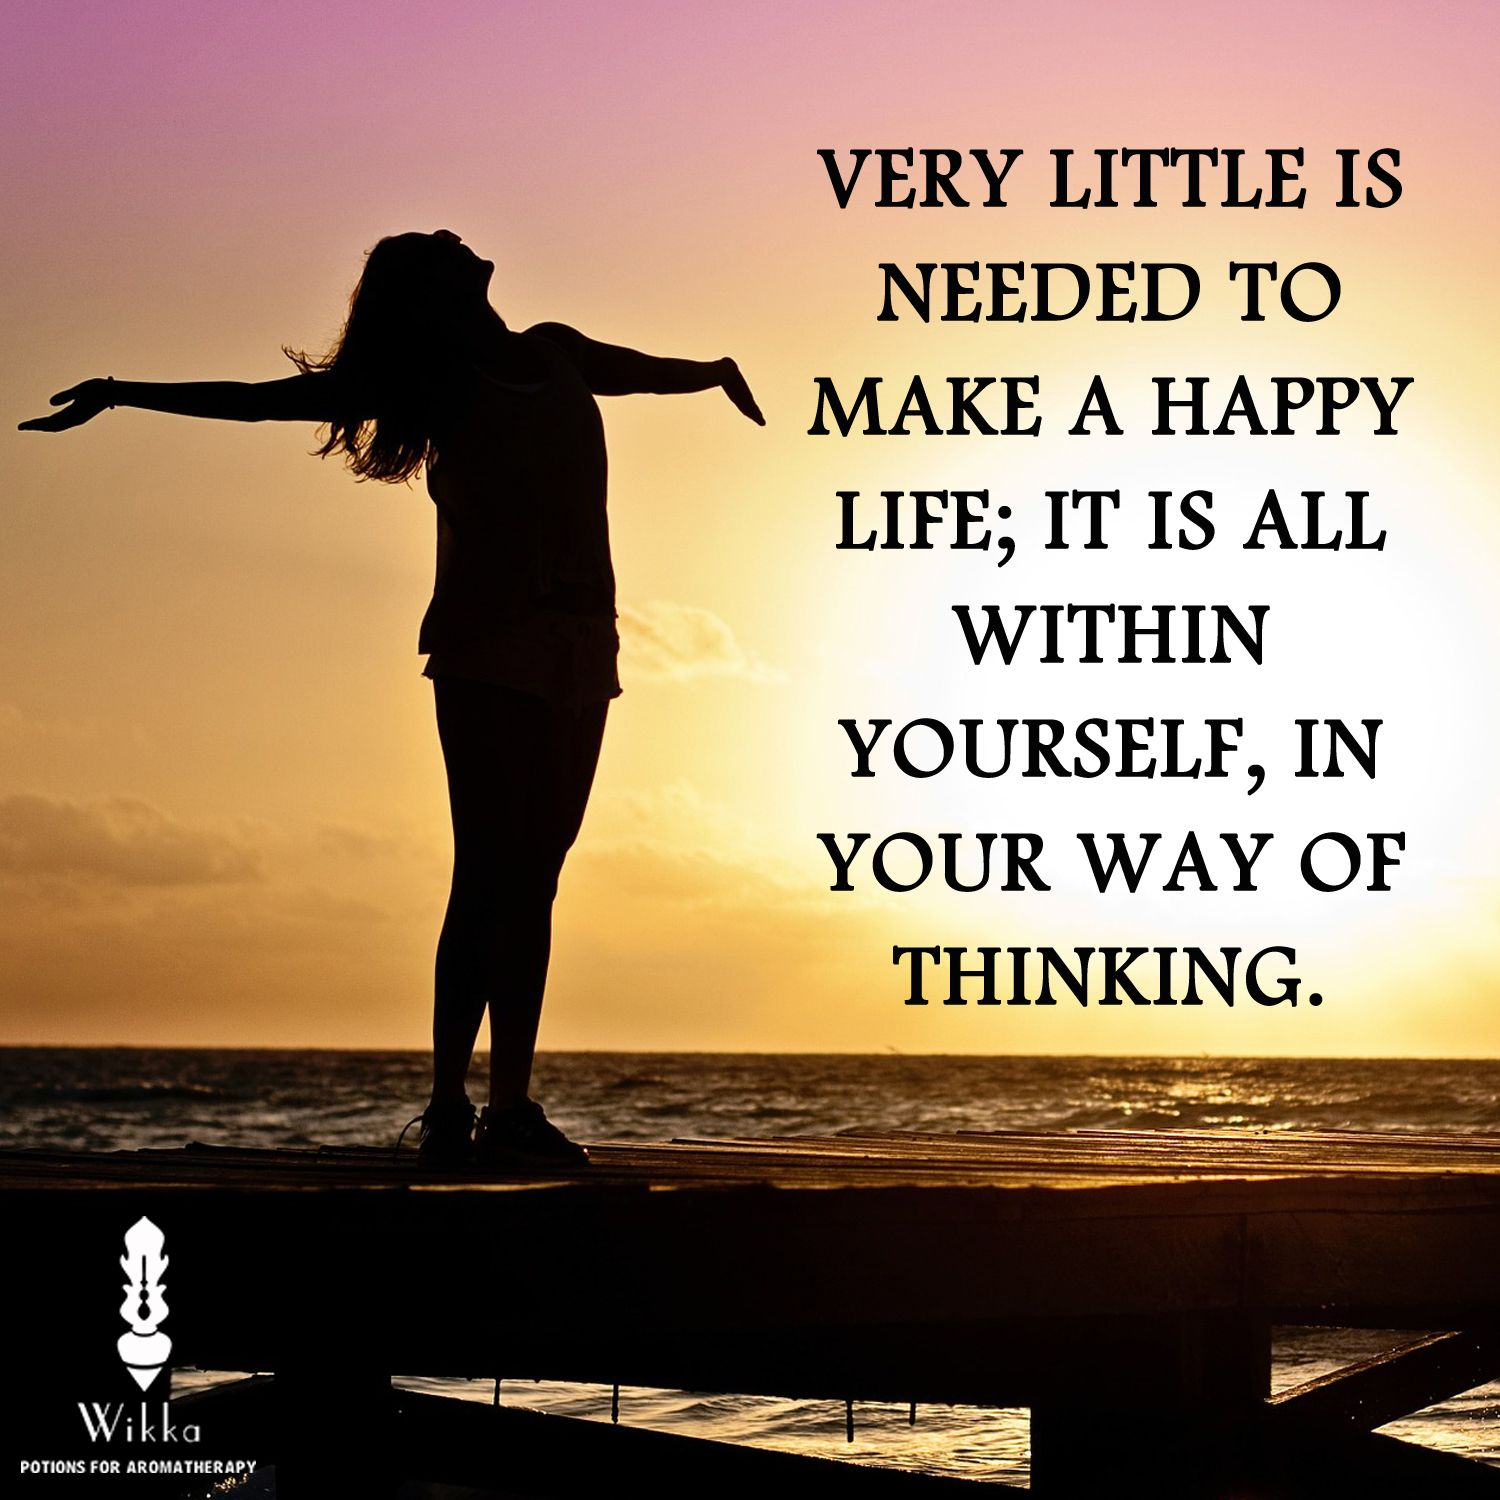 Very little is needed to make a happy life; it is all within yourself, in your way of thinking.  #Quote #Happy #Life #Thought #Friday #Today #GoodMorning #Motivational #Inspire #ThoughtOfTheDay #Love #Like #Follow